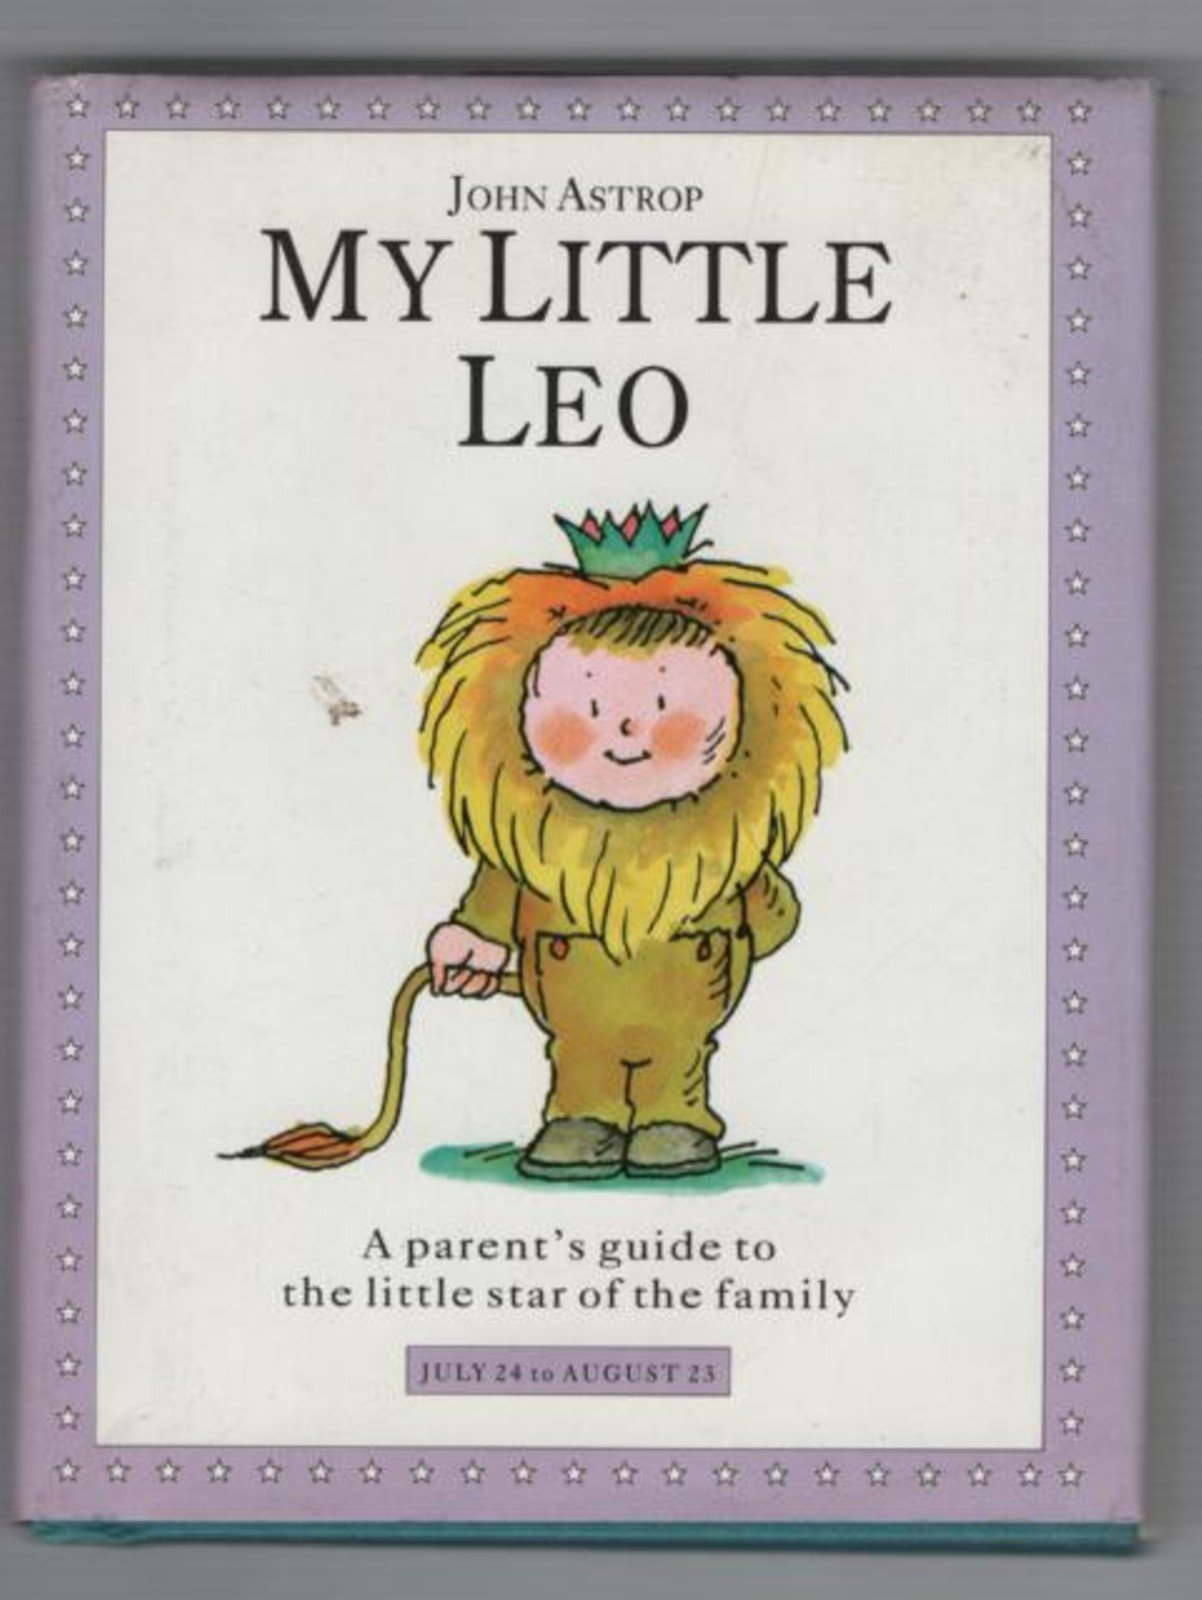 Download My Little Leo: A Parent's Guide to the Little Star of the Family (Little stars) PDF